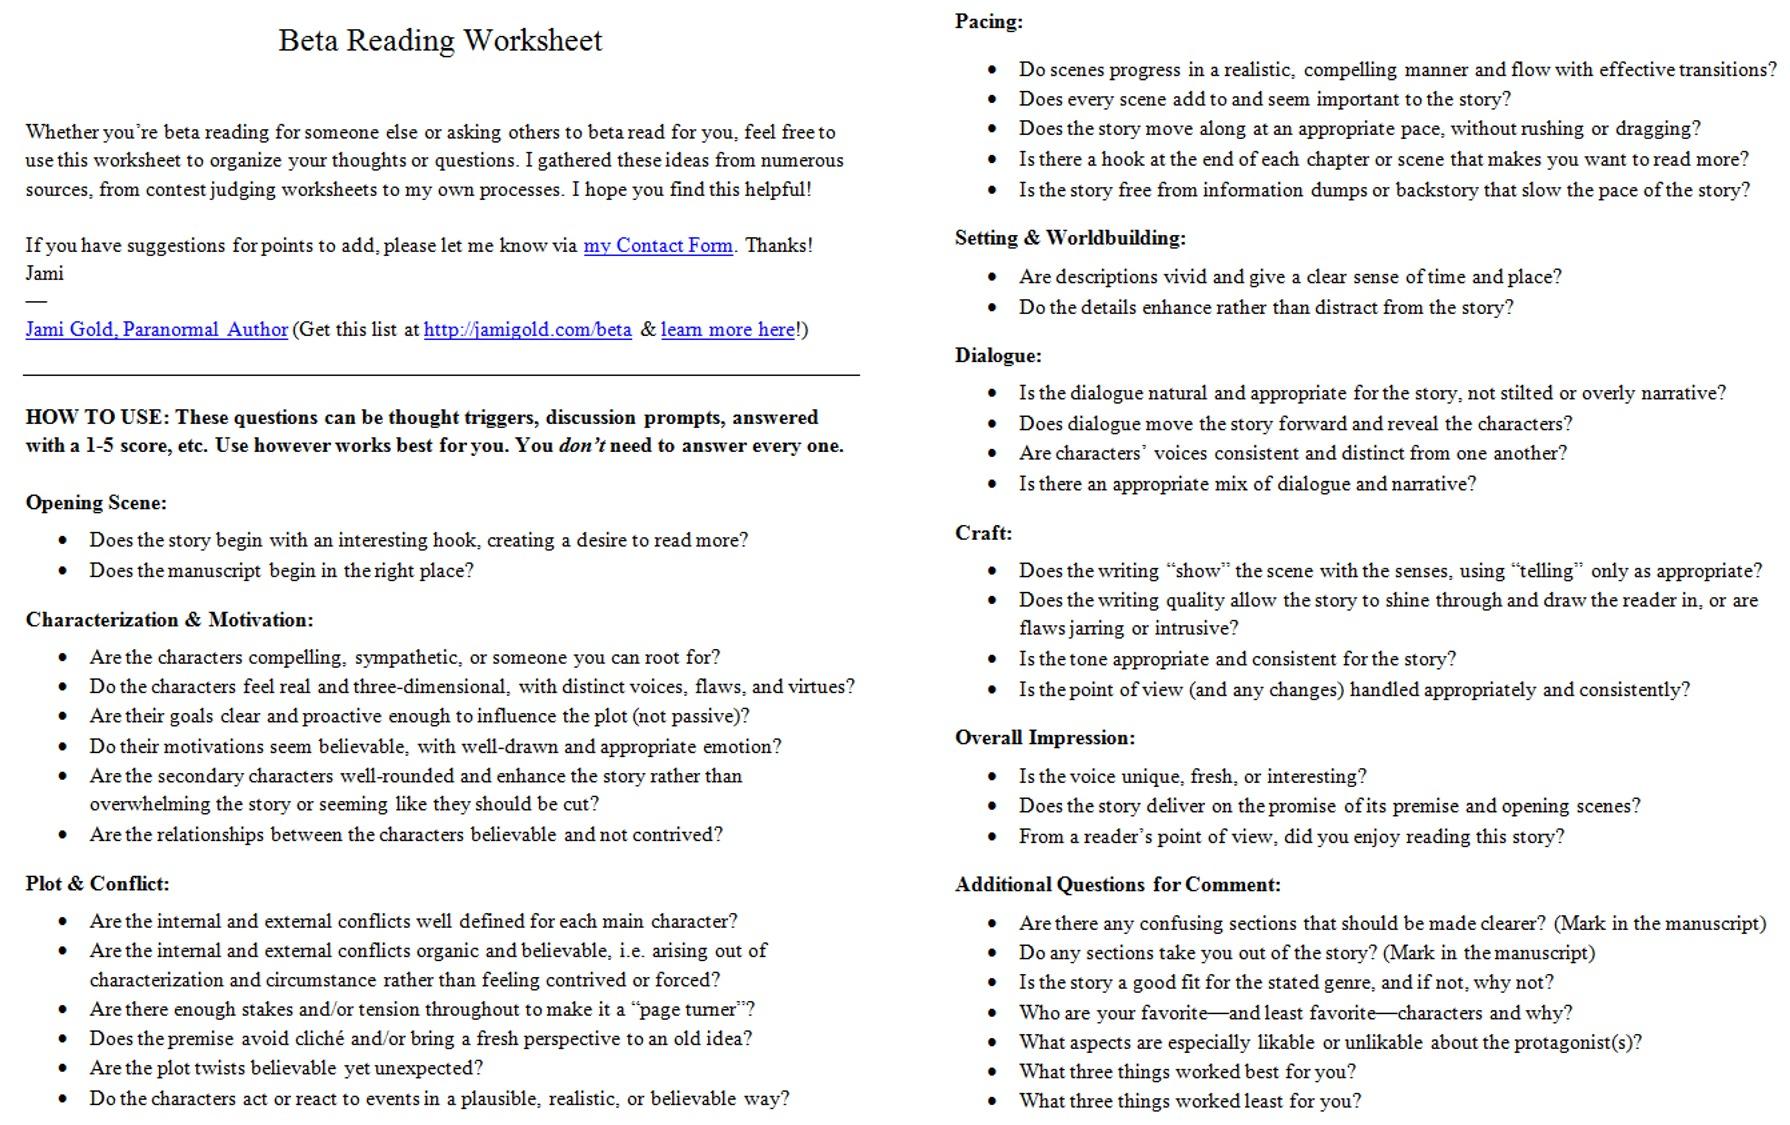 Aldiablosus  Ravishing Worksheets For Writers  Jami Gold Paranormal Author With Inspiring Screen Shot Of The Twopage Beta Reading Worksheet With Breathtaking Length Conversion Worksheet Also Compound Interest Problems Worksheet In Addition Reading Comprehension Worksheets For Middle School And Alphabet Matching Worksheets As Well As History Worksheets For High School Additionally Adverb And Adjective Worksheets From Jamigoldcom With Aldiablosus  Inspiring Worksheets For Writers  Jami Gold Paranormal Author With Breathtaking Screen Shot Of The Twopage Beta Reading Worksheet And Ravishing Length Conversion Worksheet Also Compound Interest Problems Worksheet In Addition Reading Comprehension Worksheets For Middle School From Jamigoldcom